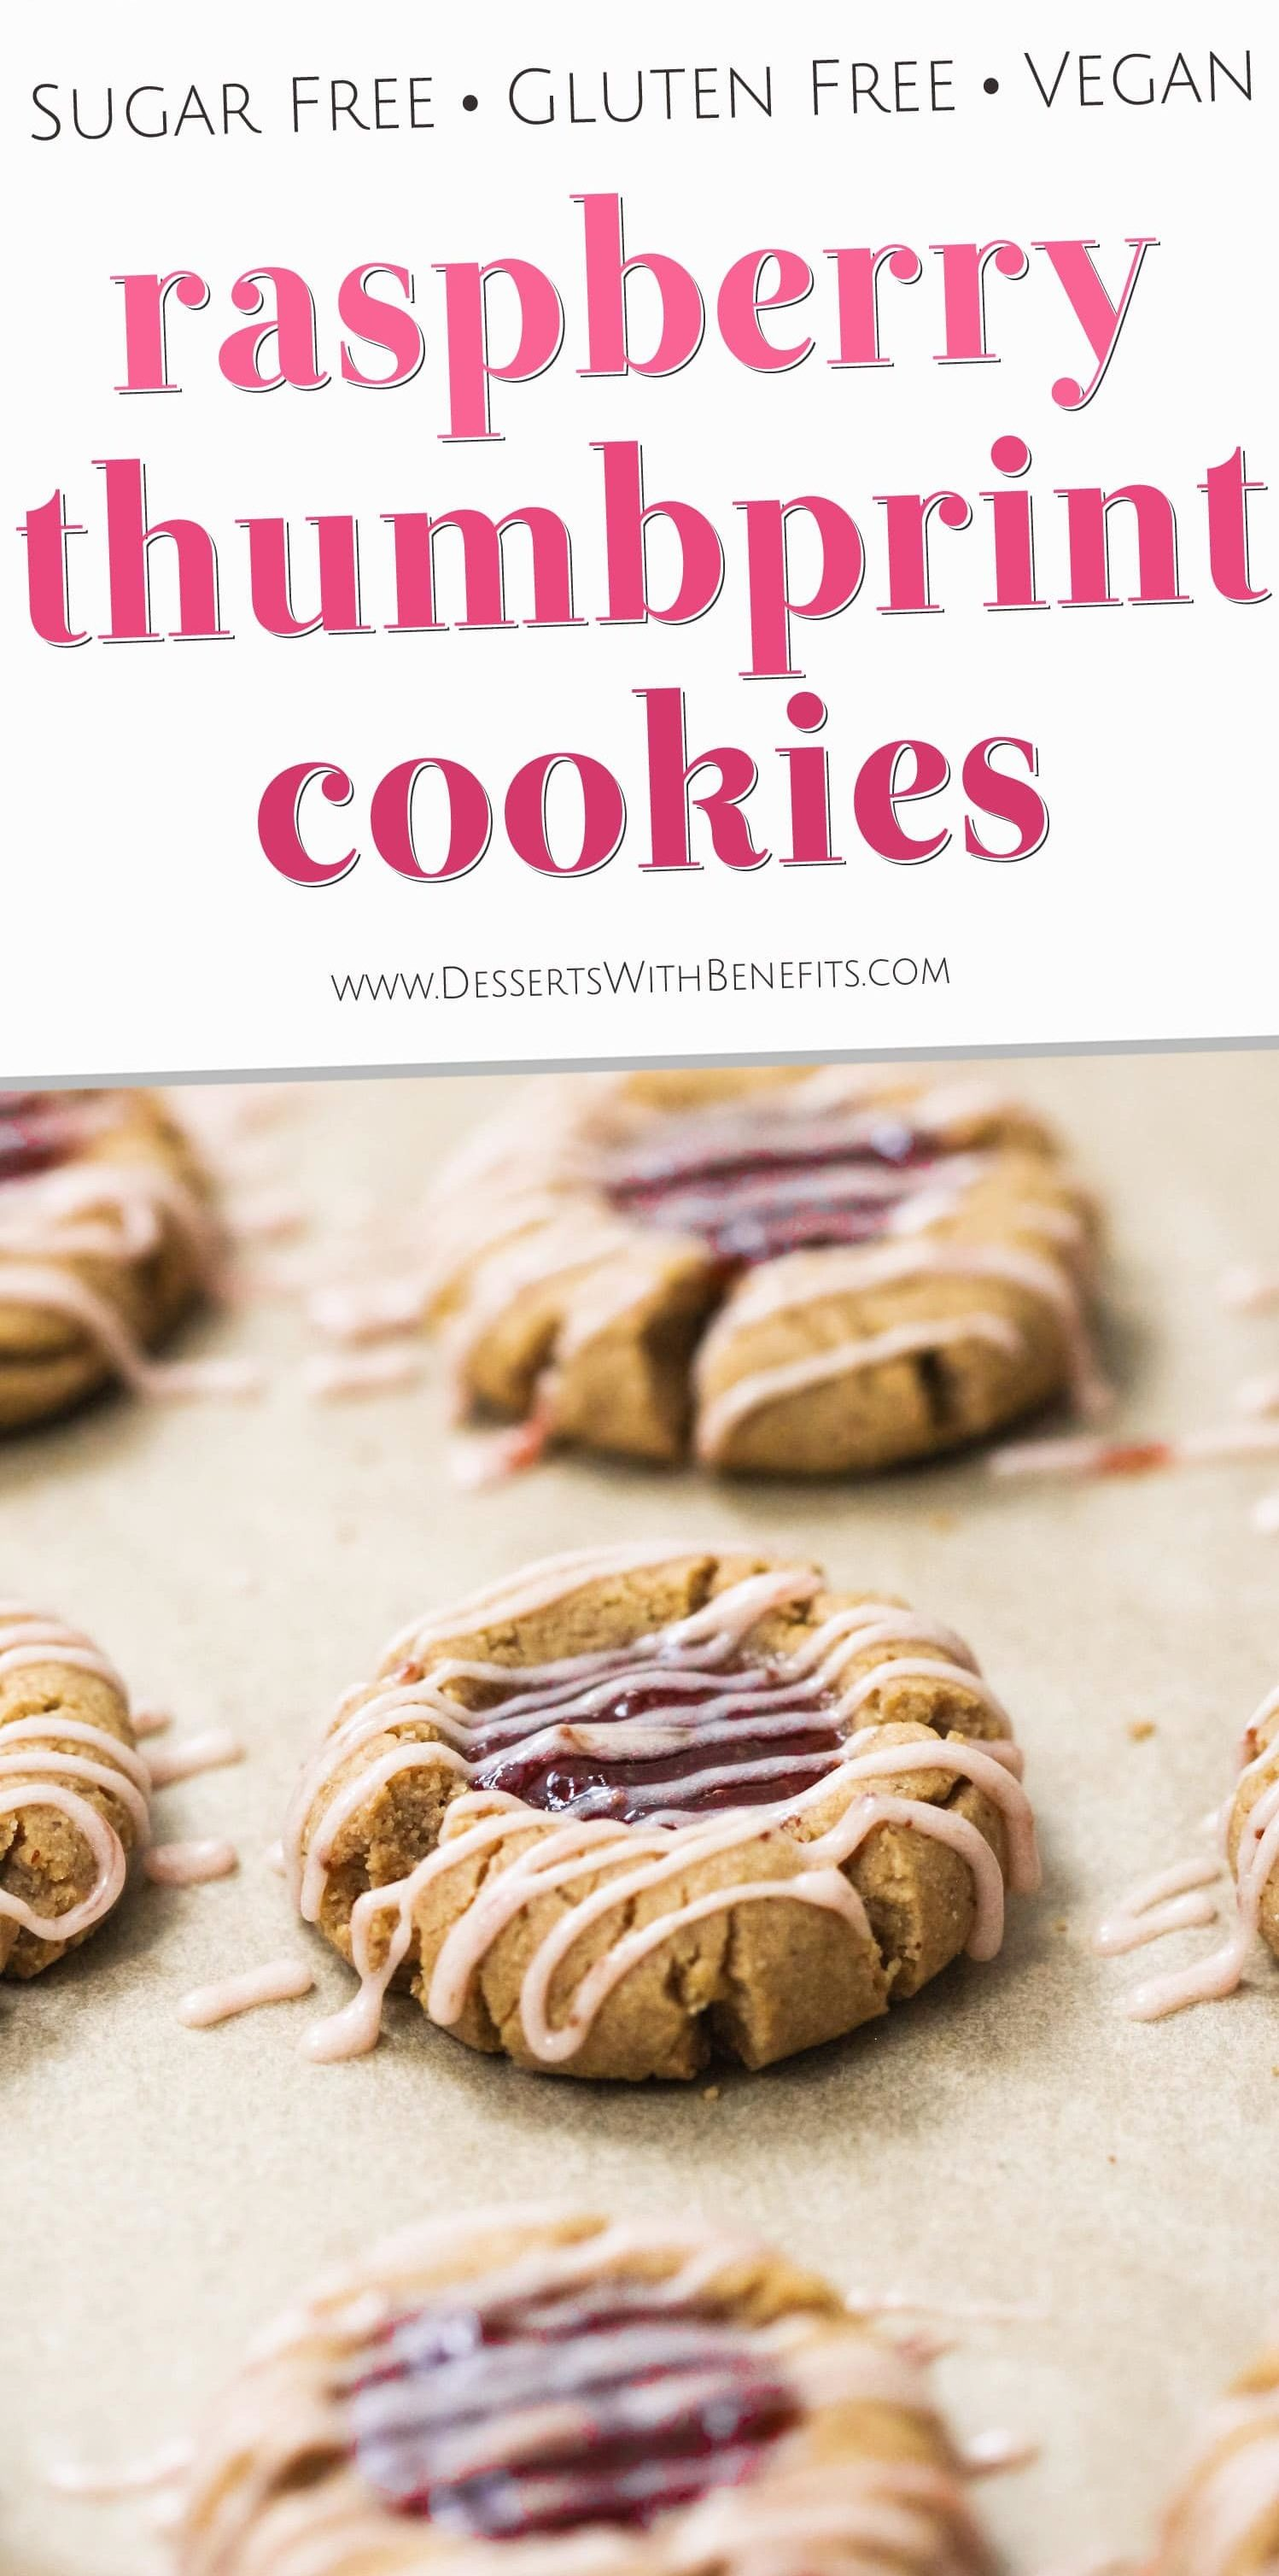 These Healthy Raspberry Thumbprint Cookies are so soft, chewy, and delicious (not to mention, easy tomake!), you'd never know they're refined sugar free, gluten free, dairy free, and vegan too! Healthy Dessert Recipes with sugar free, low fat, gluten free, and vegan options at the Desserts With Benefits Blog (www.DessertsWithBenefits.com)